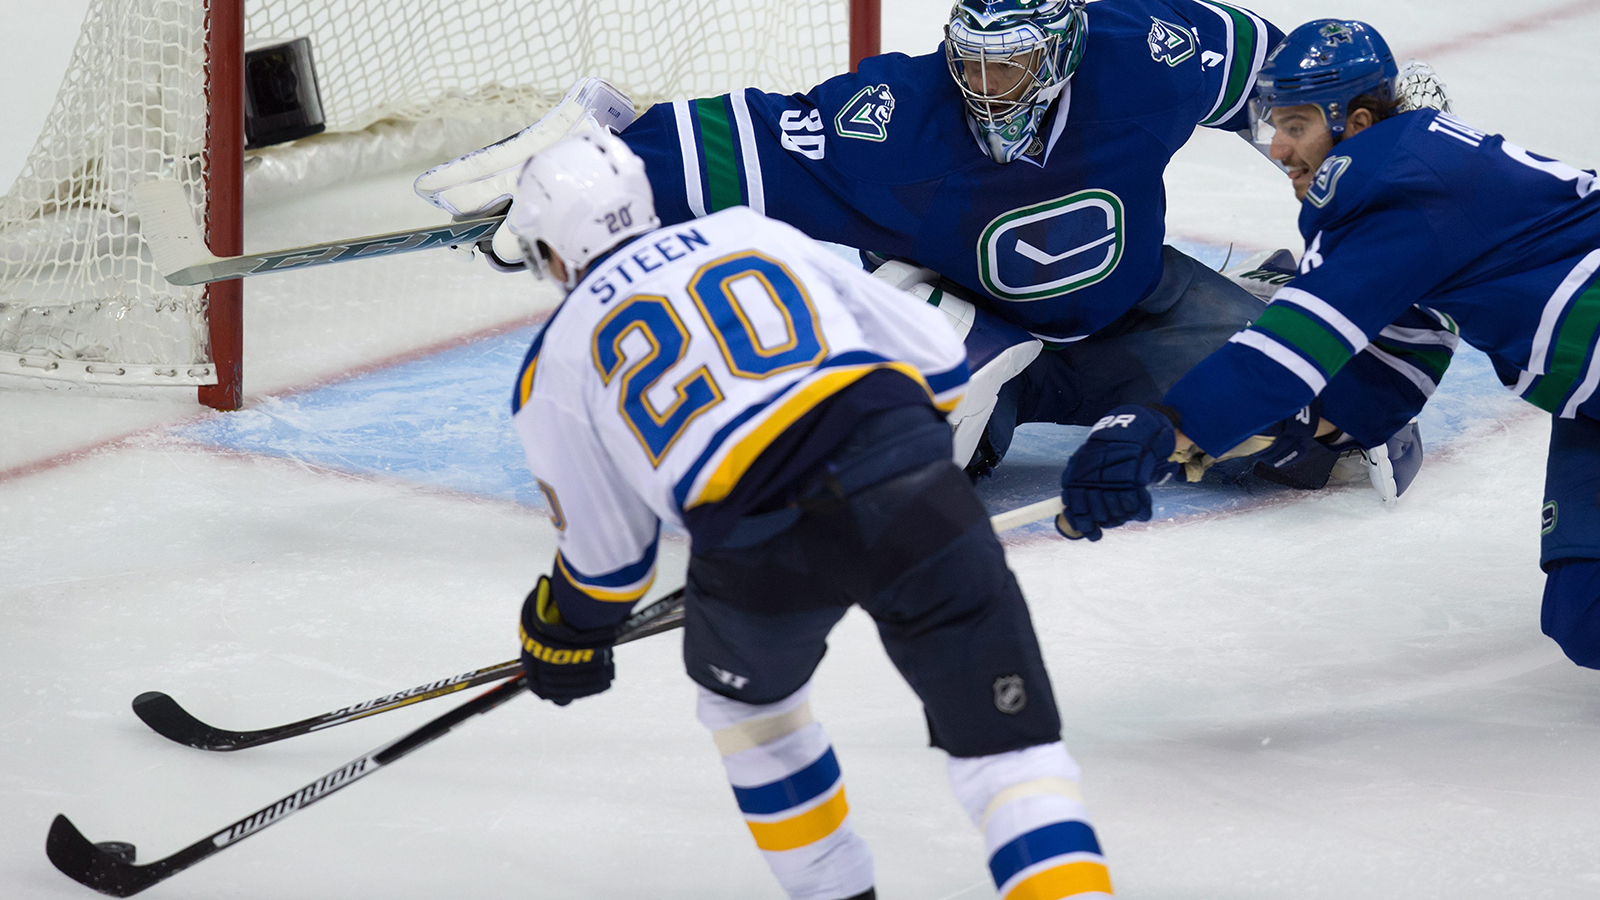 Steen leads the way as Blues survive late Canucks surge 4-3